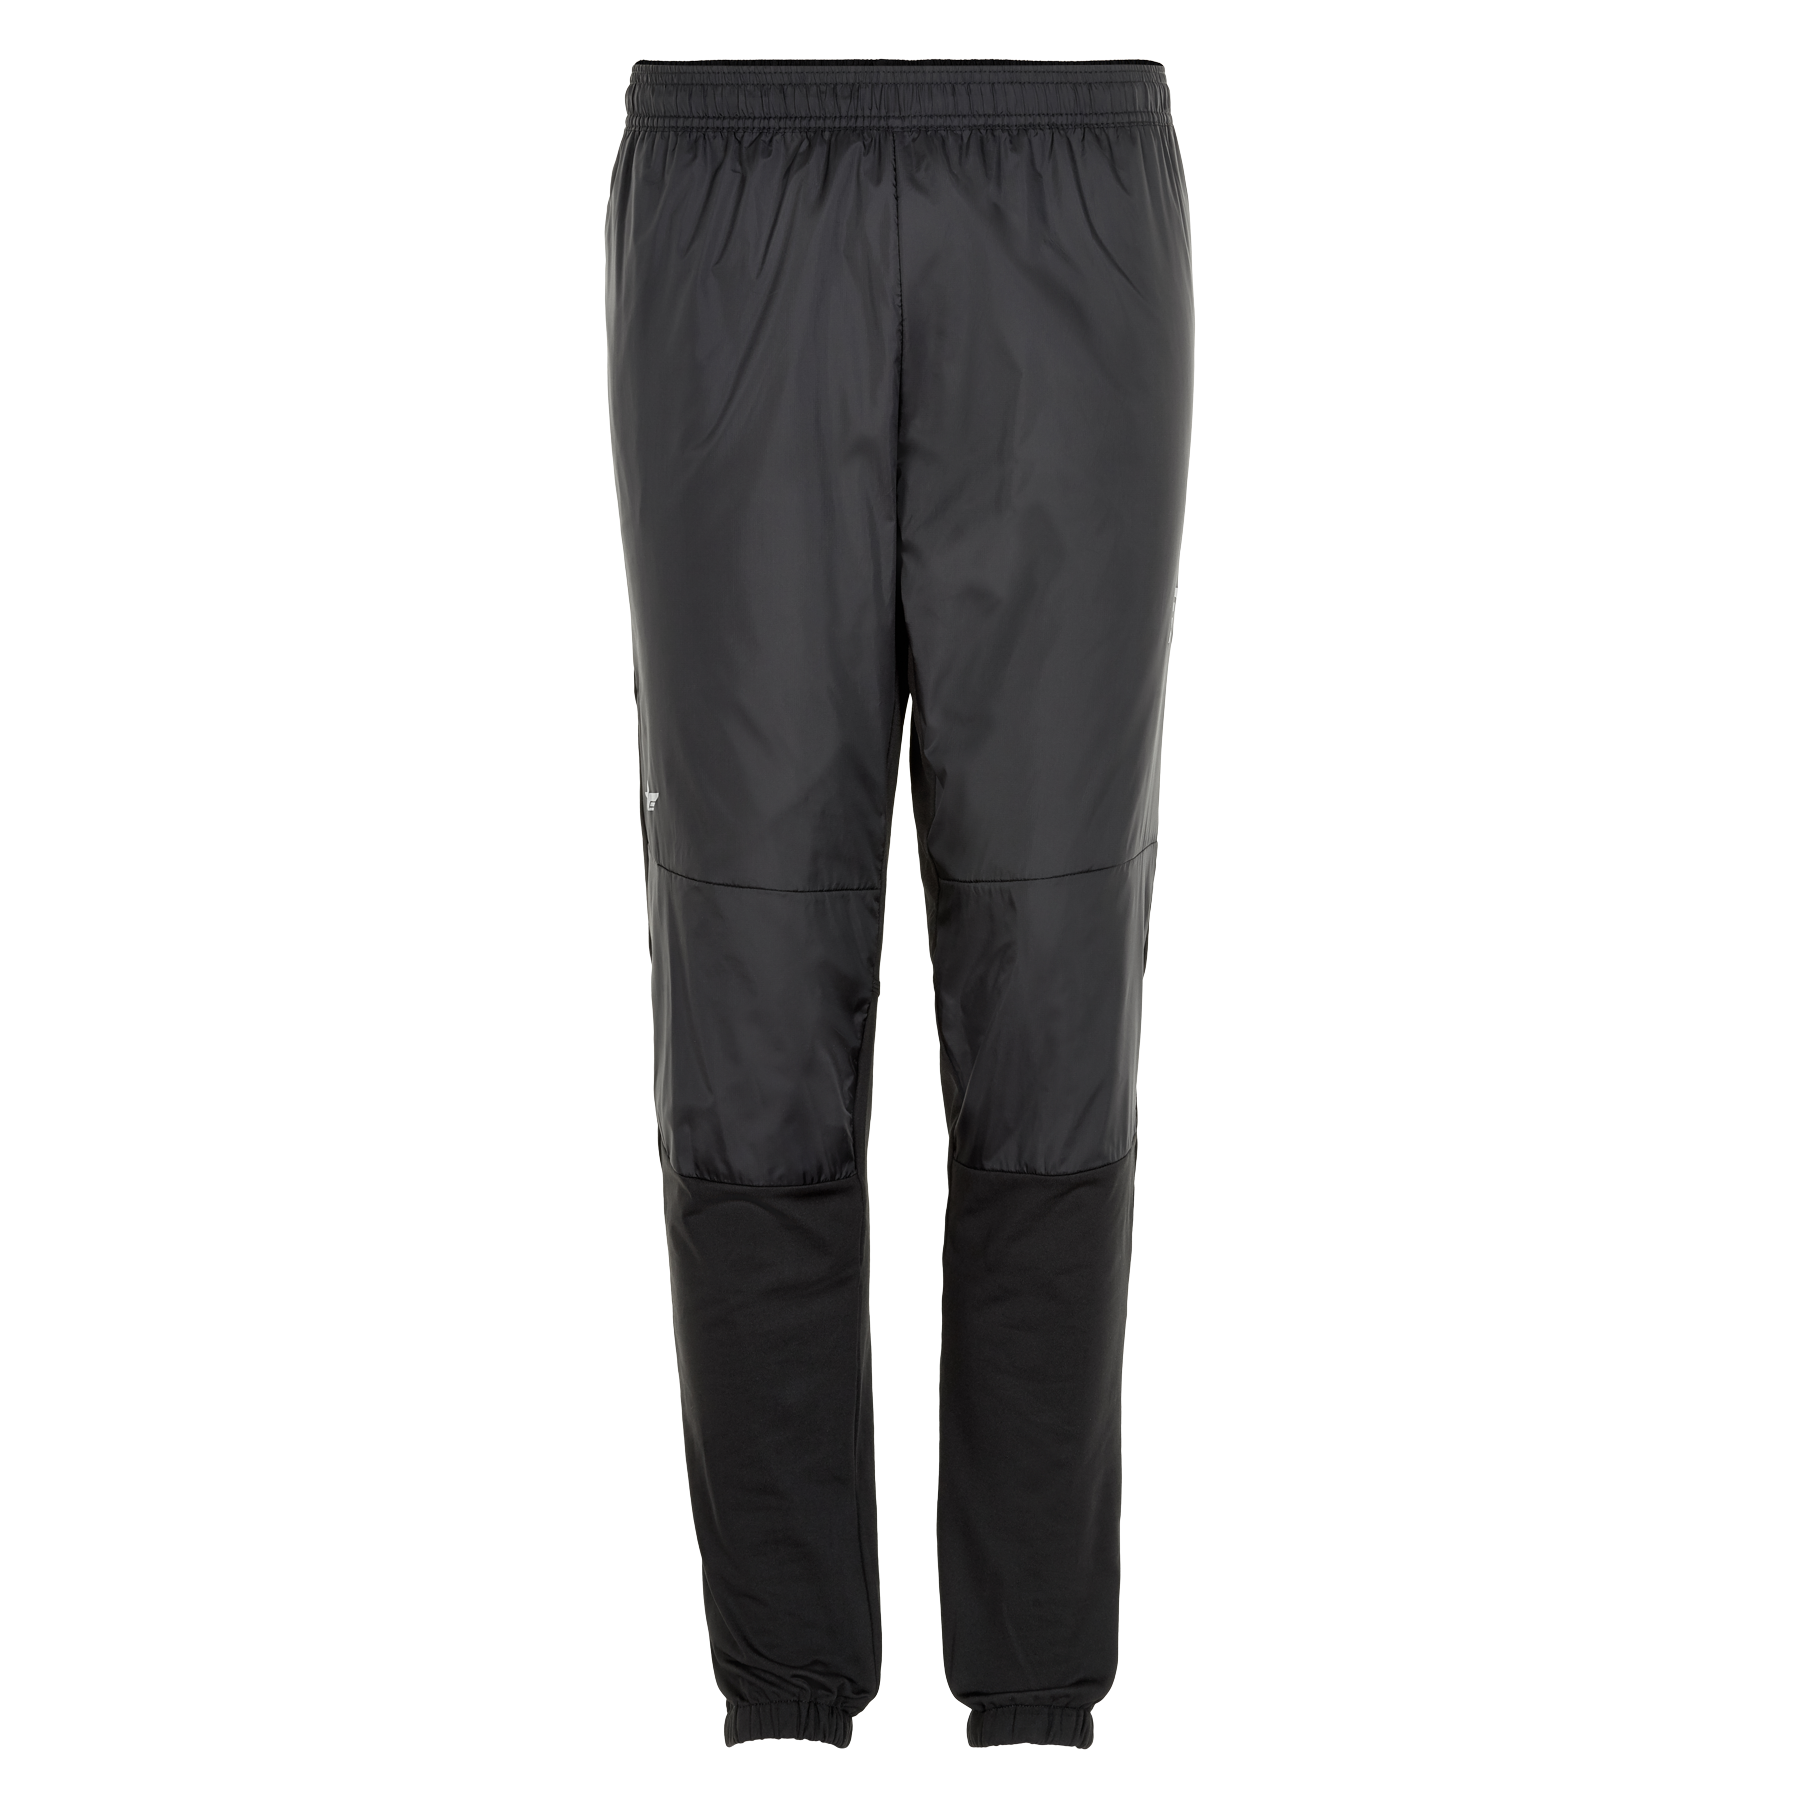 spodnie do biegania męskie NEWLINE BLACK CROSS PANTS / 71383-060 RunnersClub 42385